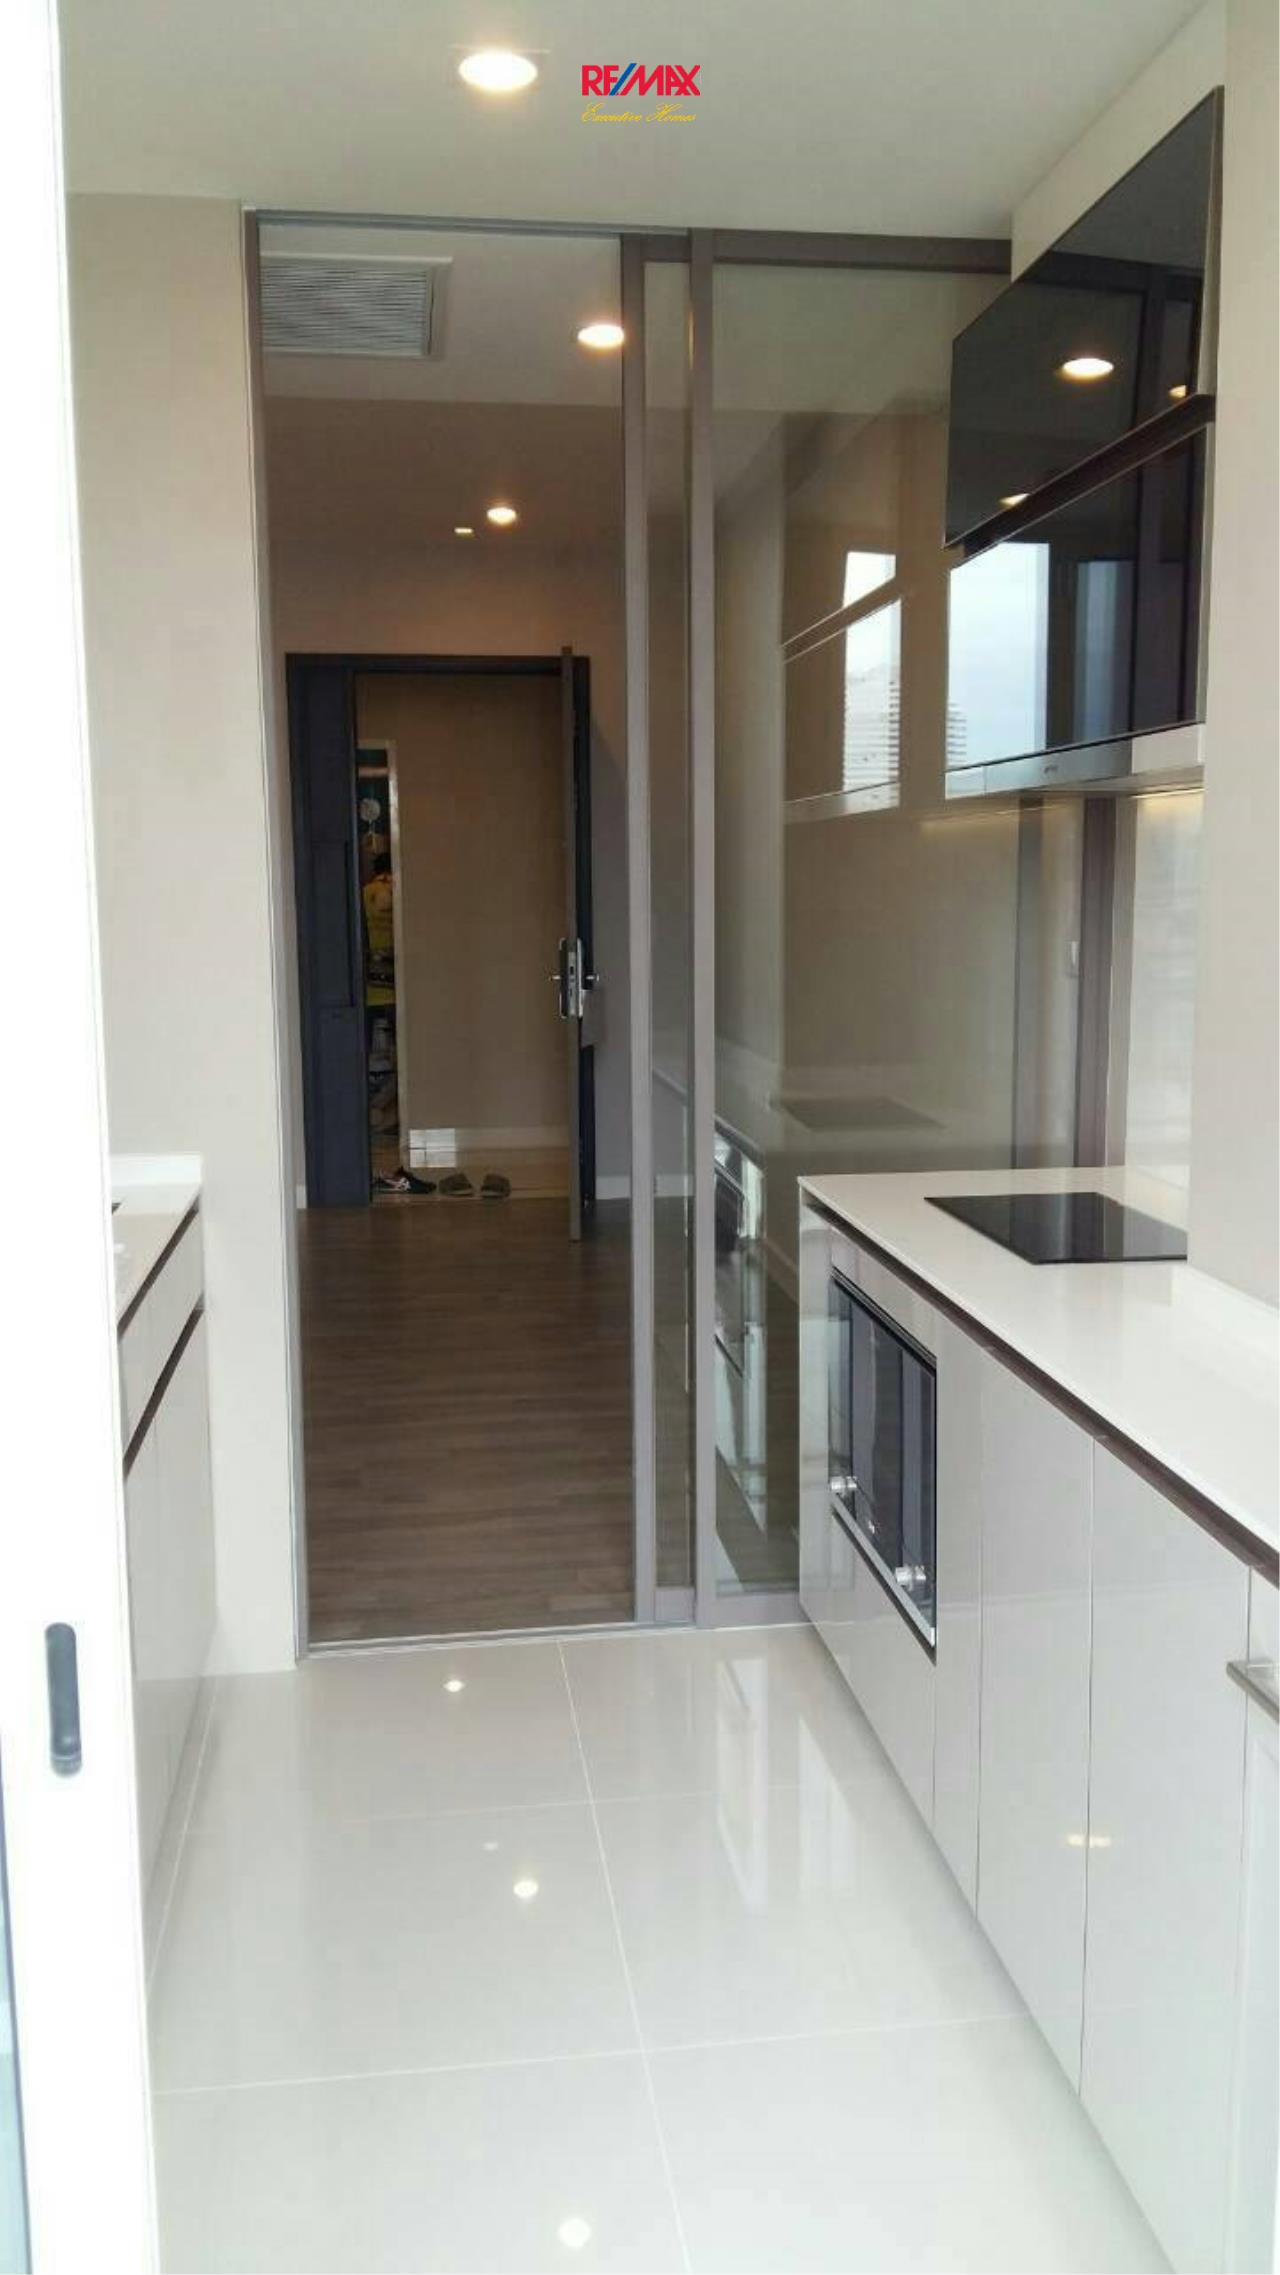 RE/MAX Executive Homes Agency's Nice 1 Bedroom for Rent The Room Sathorn 4